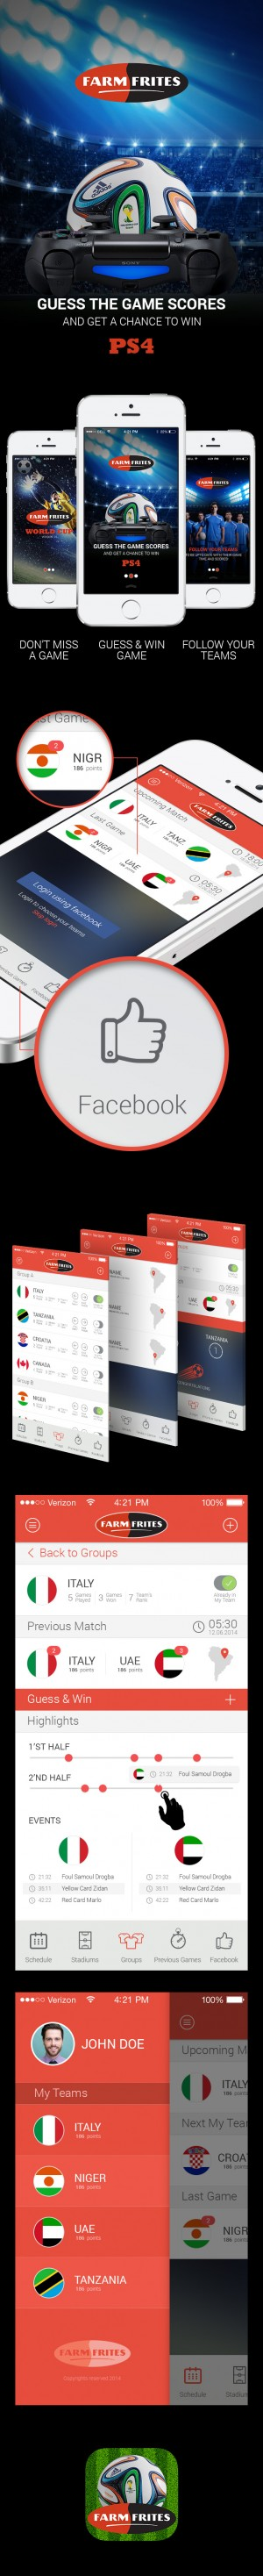 This an app for the world cup 2014, where you are able to sign in using your Facebook account to ...